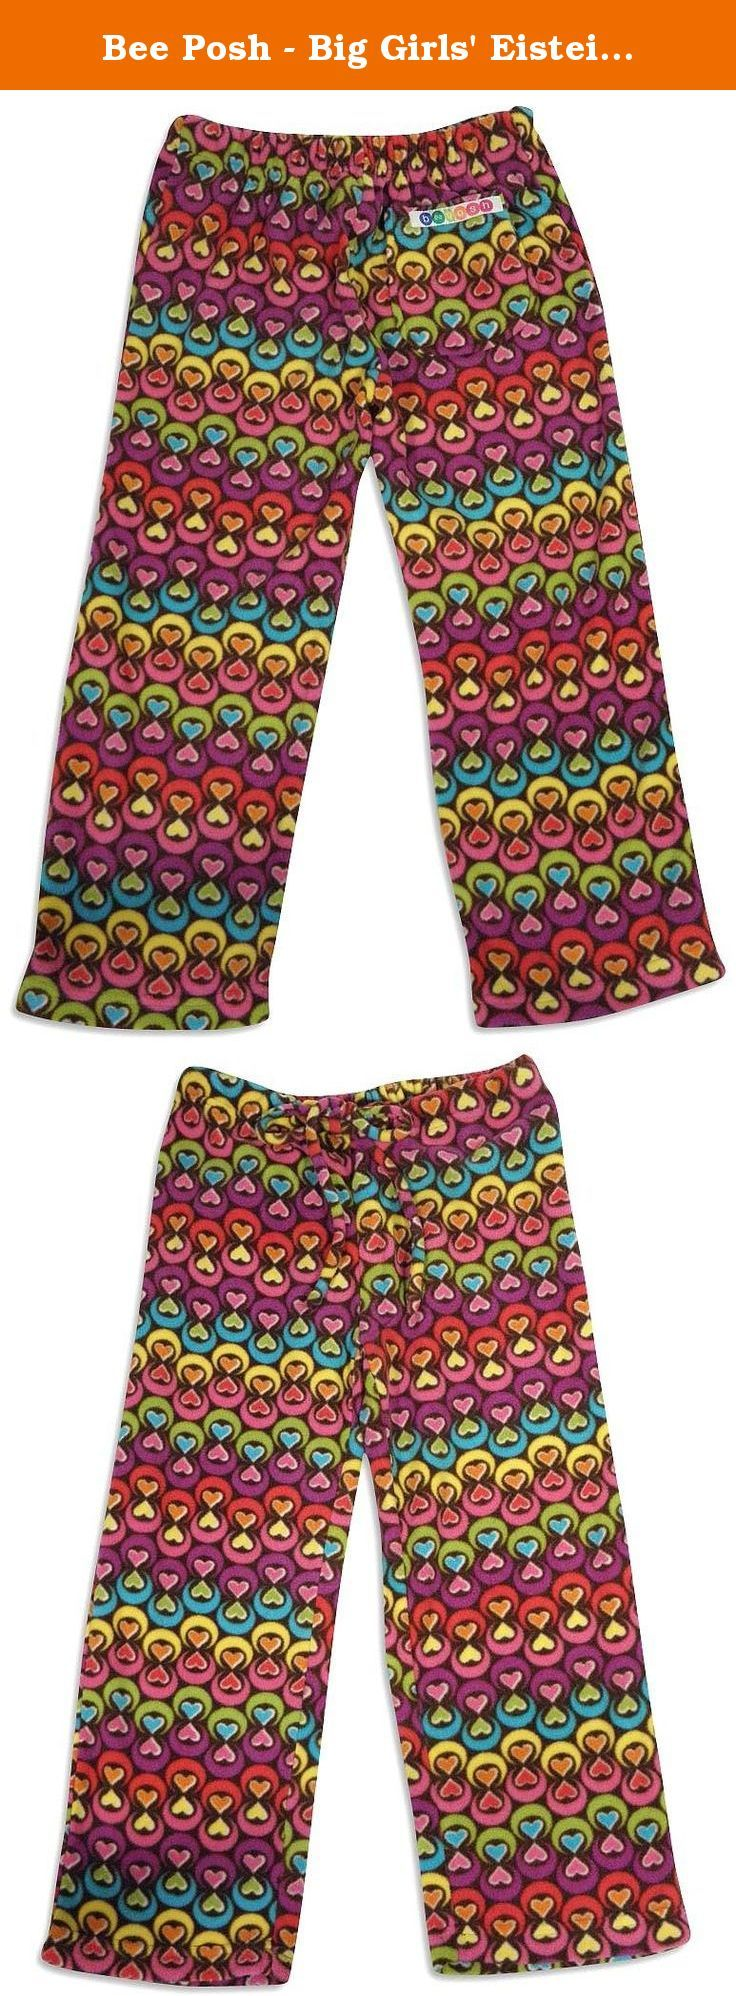 Bee Posh - Big Girls' Eistein Hearts Cozy Fleece Pajama Pant, Brown, Multi 25518-X-Large. Feel The Comfort In Style with these elastic back waistband pajama pant and a drawstring front, They have a single back pocket, Made of 100% flame resistant polyester in China, Size XS = 4-6 S = 7-8 M = 10-12 L= Kids 14/Adult Small XL = Kids 16/Adult Medium.